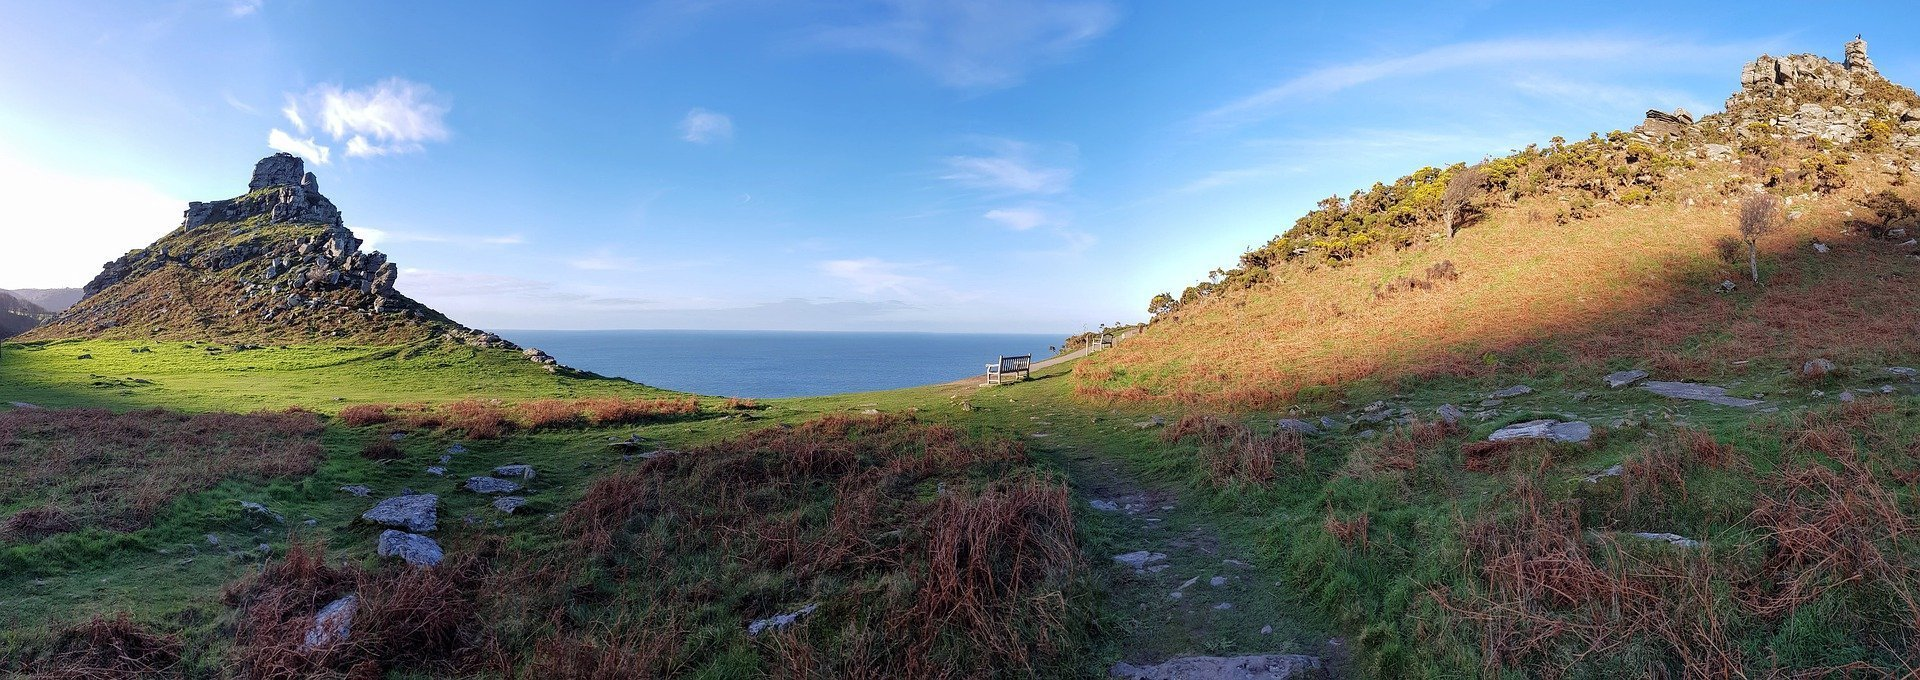 Valley of the Rocks - Lynton North Devon